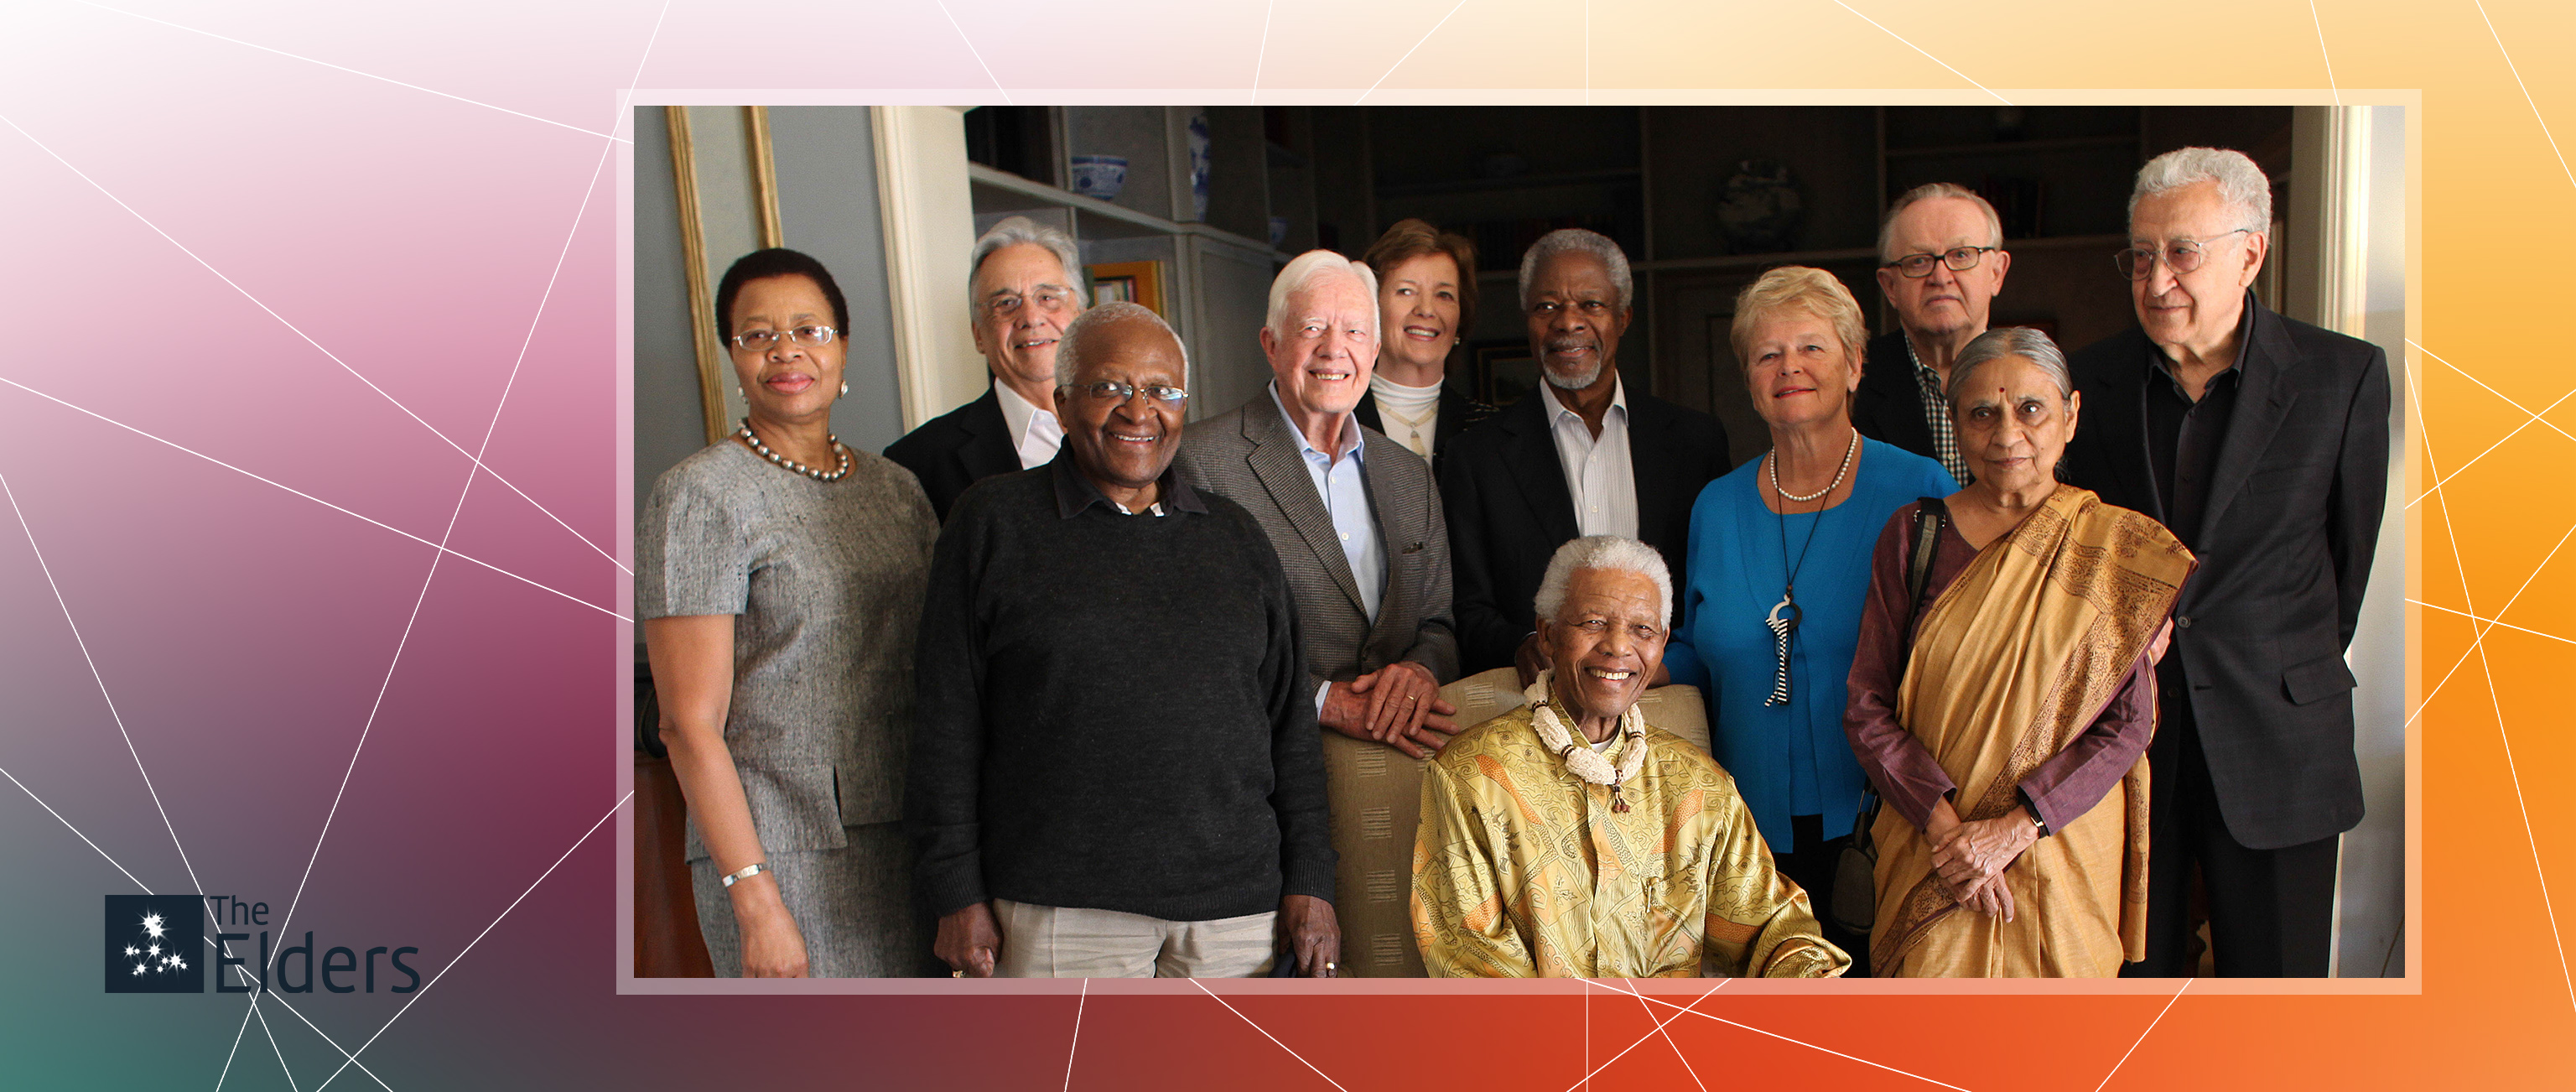 Group portrait of all Elders gathered around Nelson Mandela